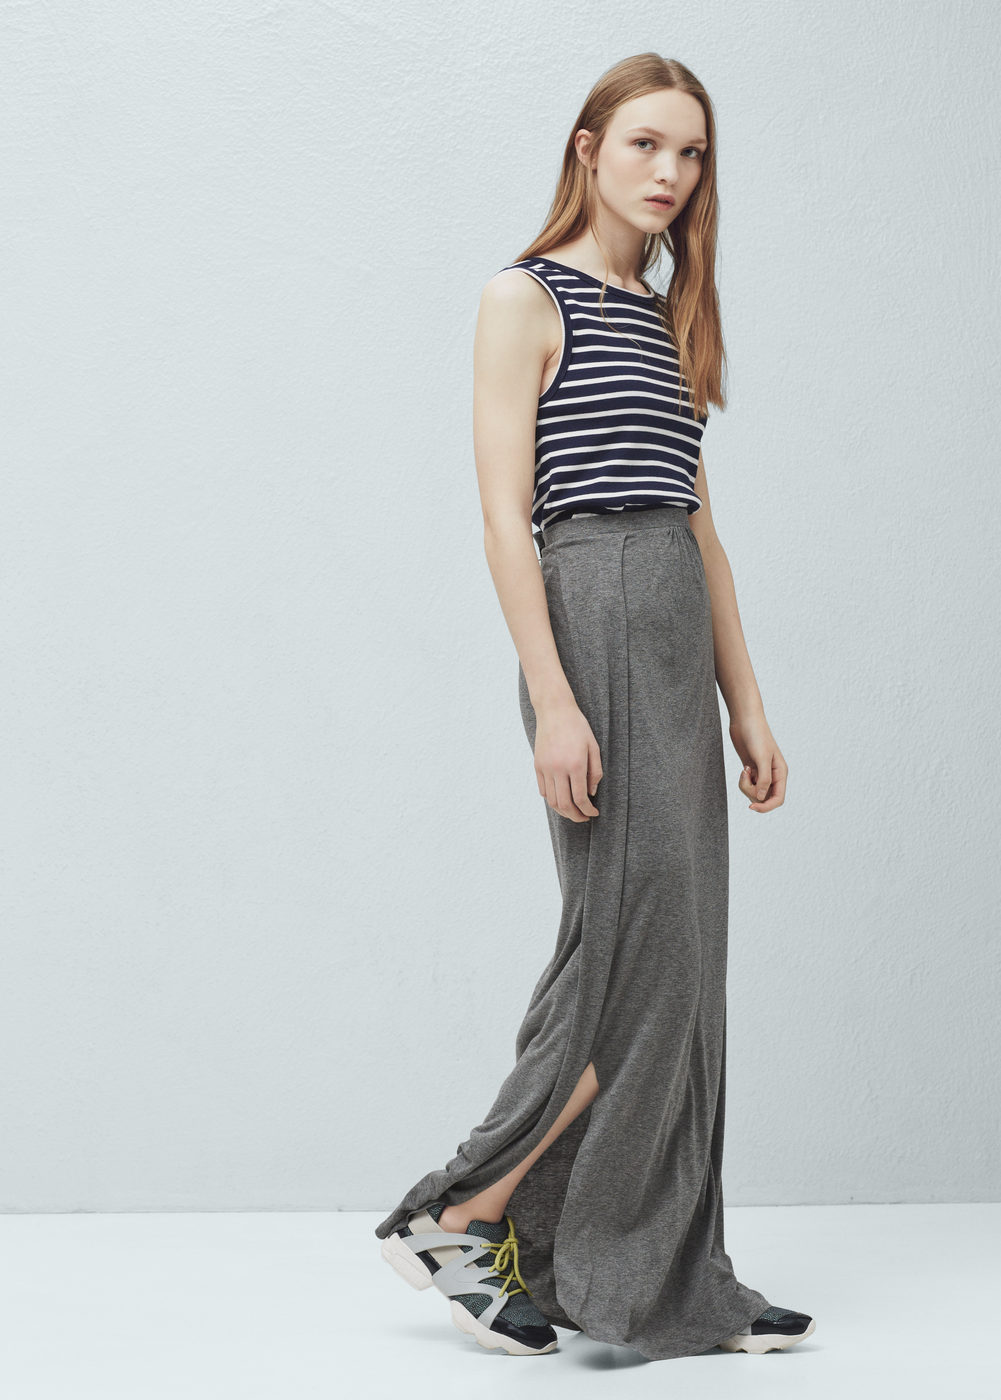 mango-flowy-grey-long-skirt-shopping-online-rupees-india-maxi-long-girls-top